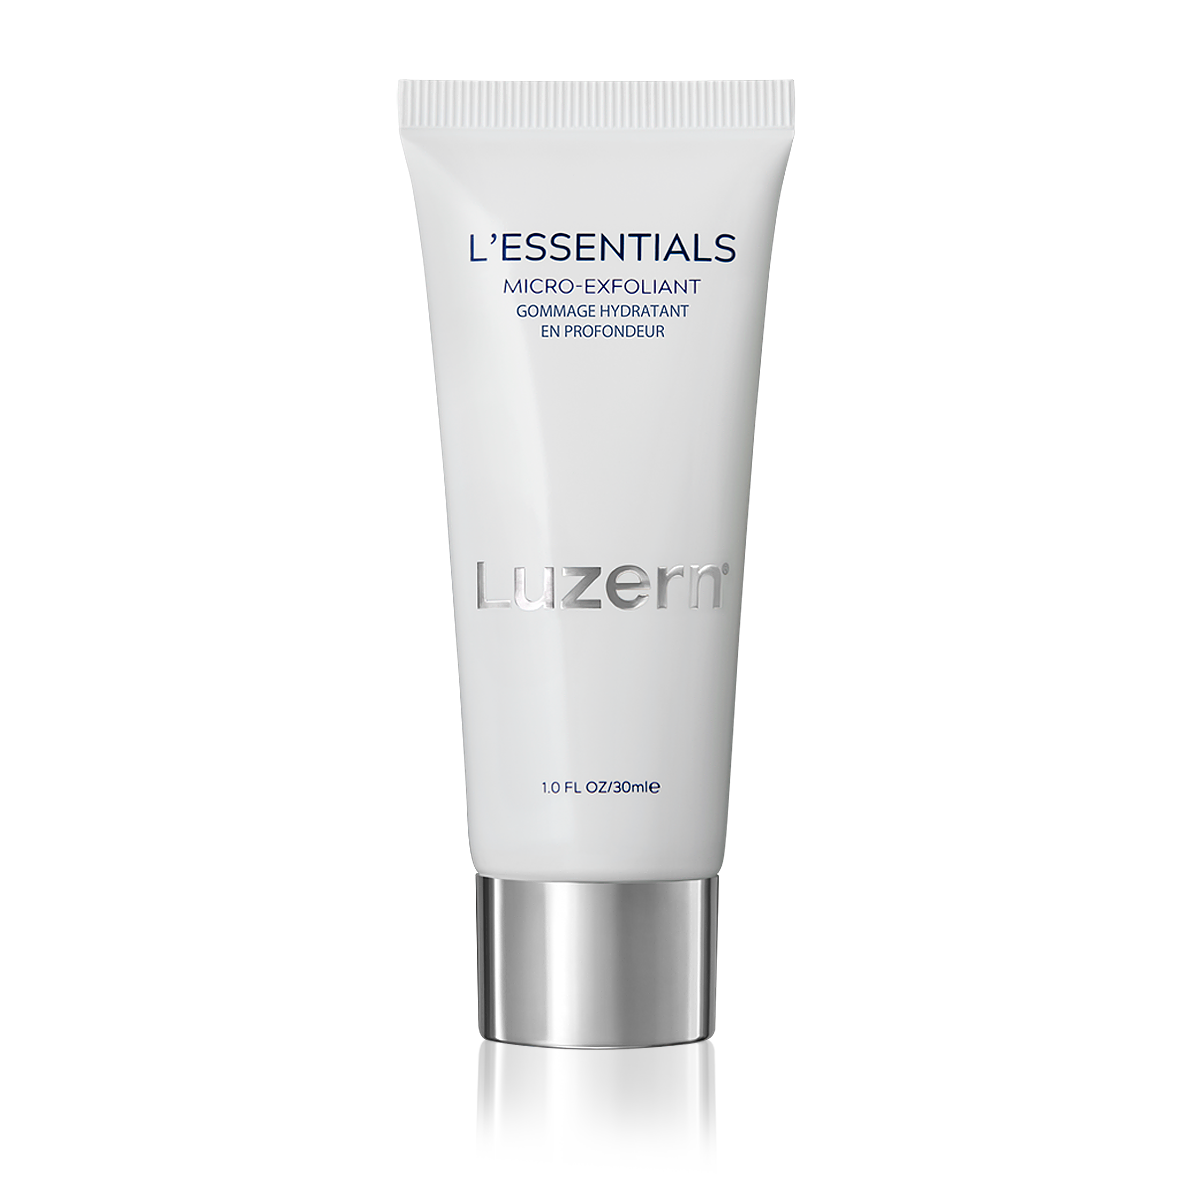 L'ESSENTIALS MICRO-EXFOLIANT mini 30 ml